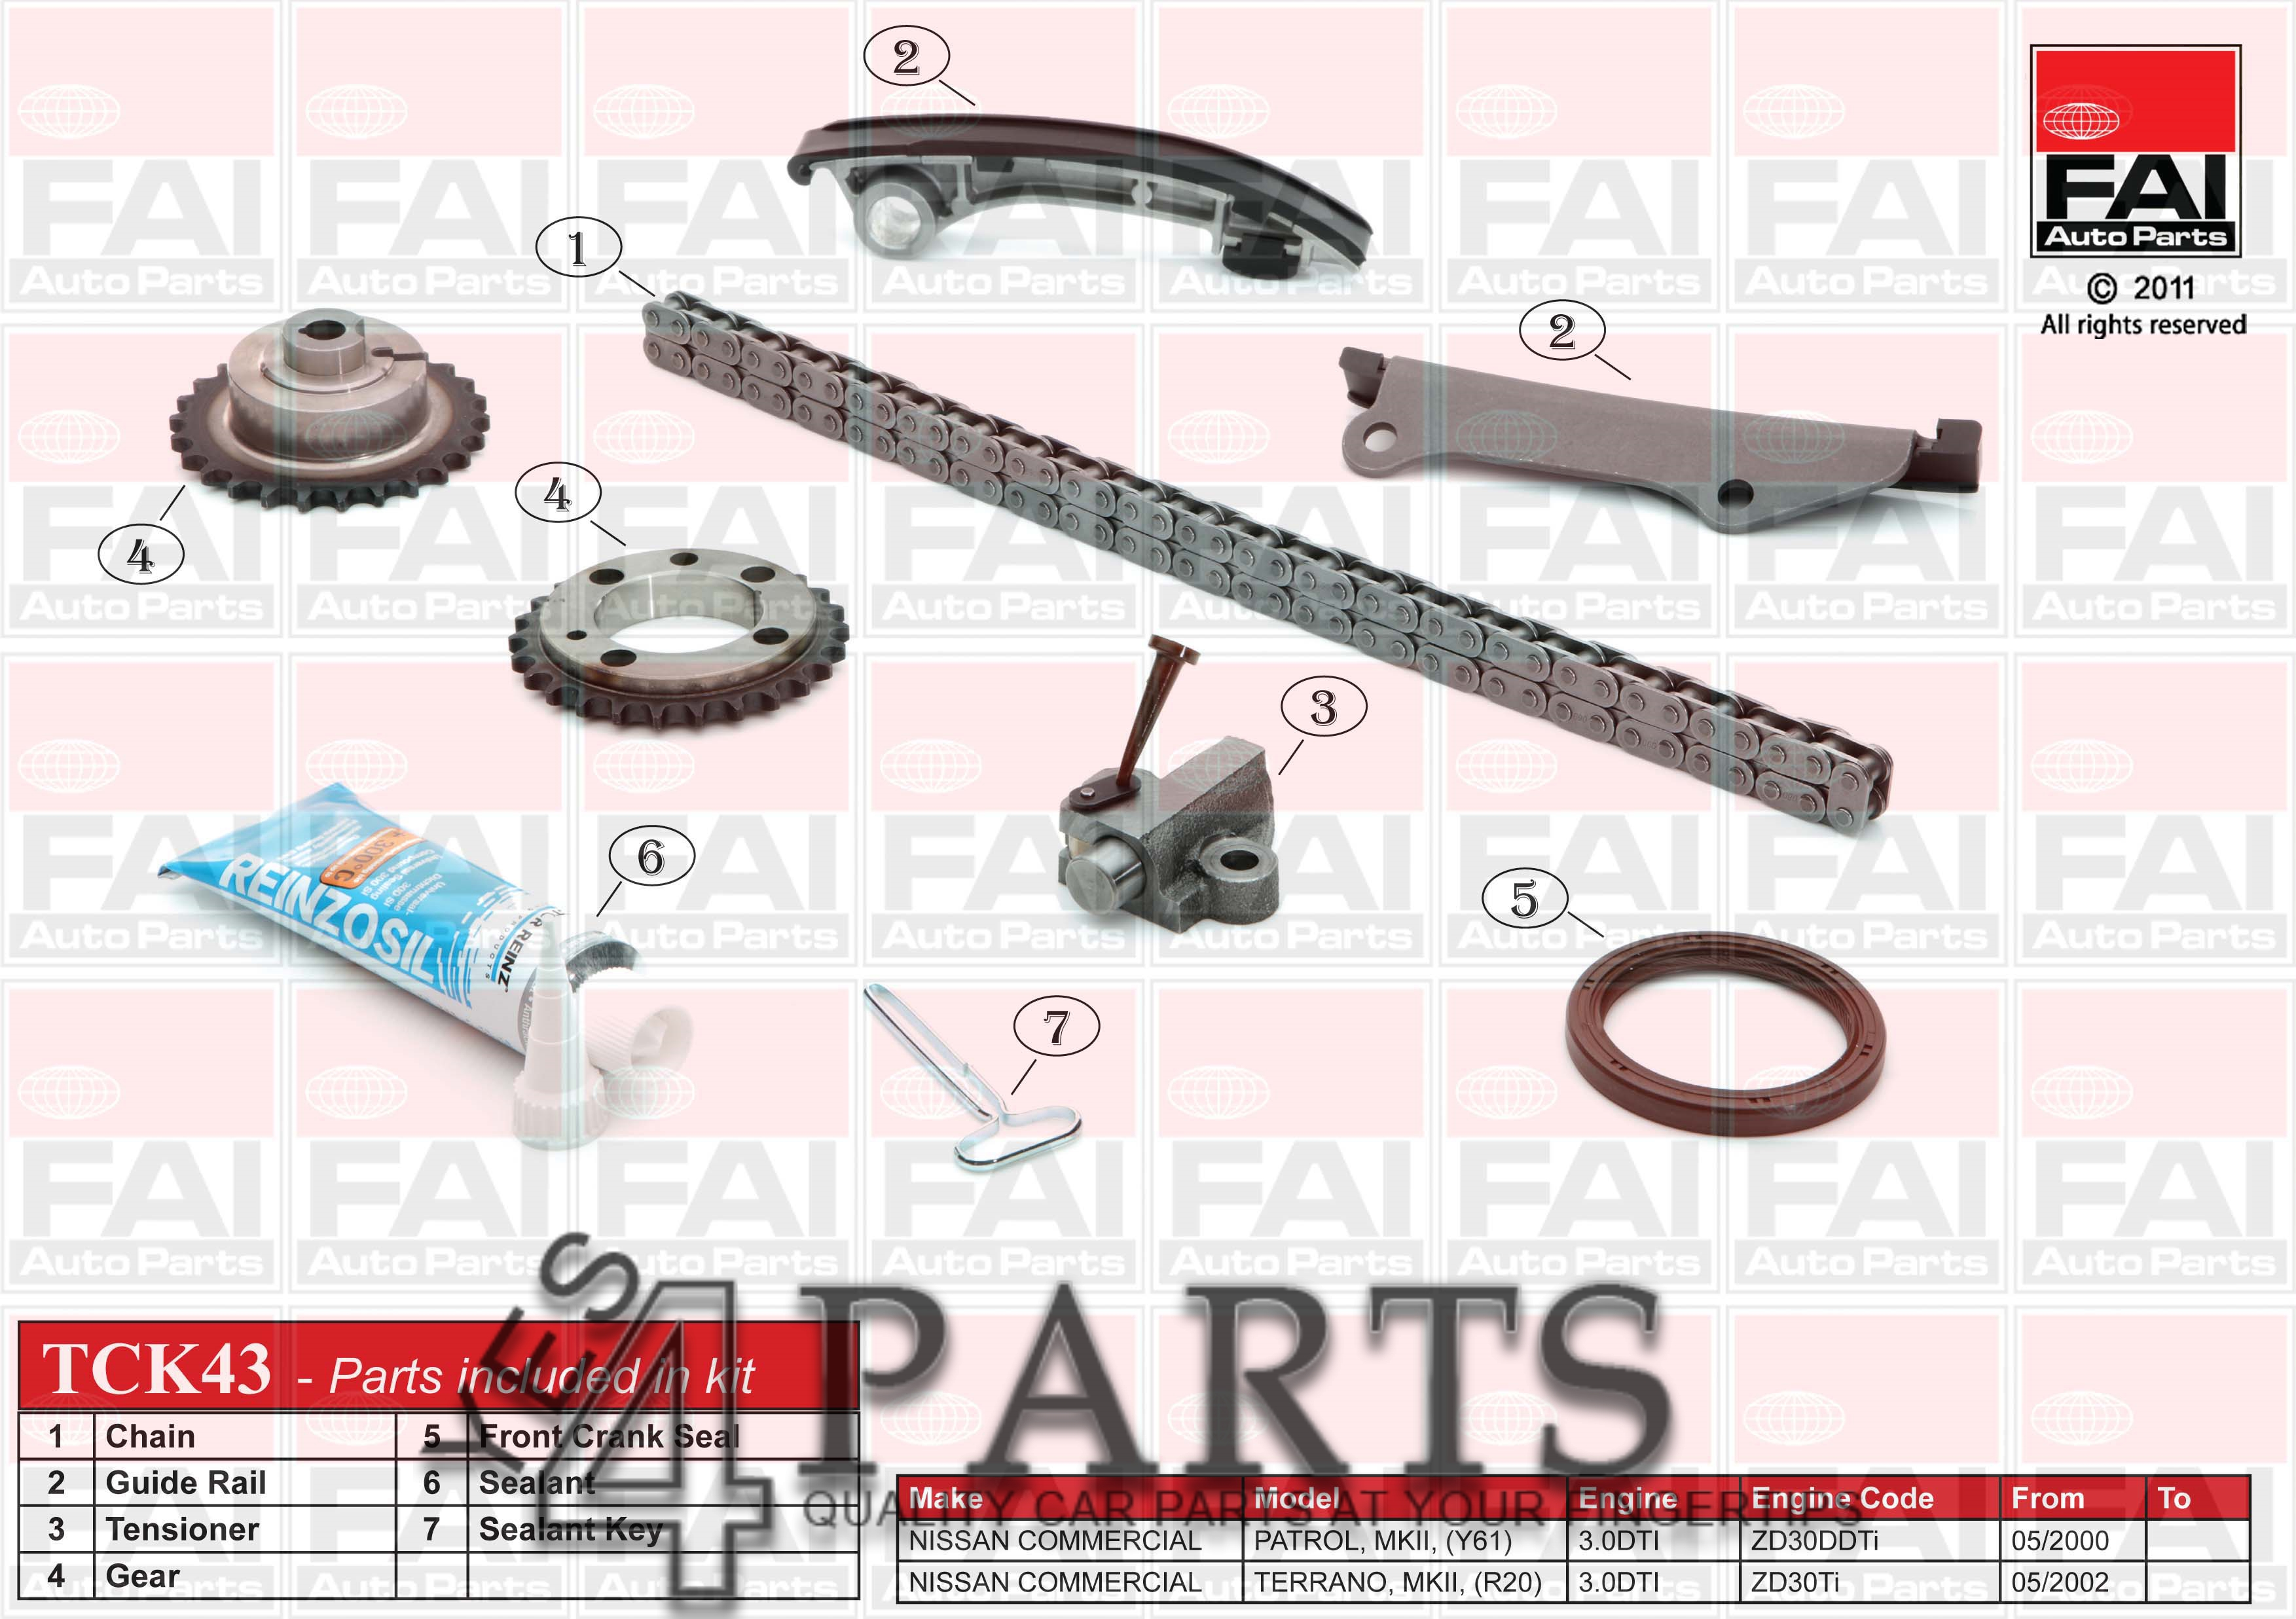 NISSAN PATROL GR Mk II (Y61) 3.0 D Timing Chain Kit